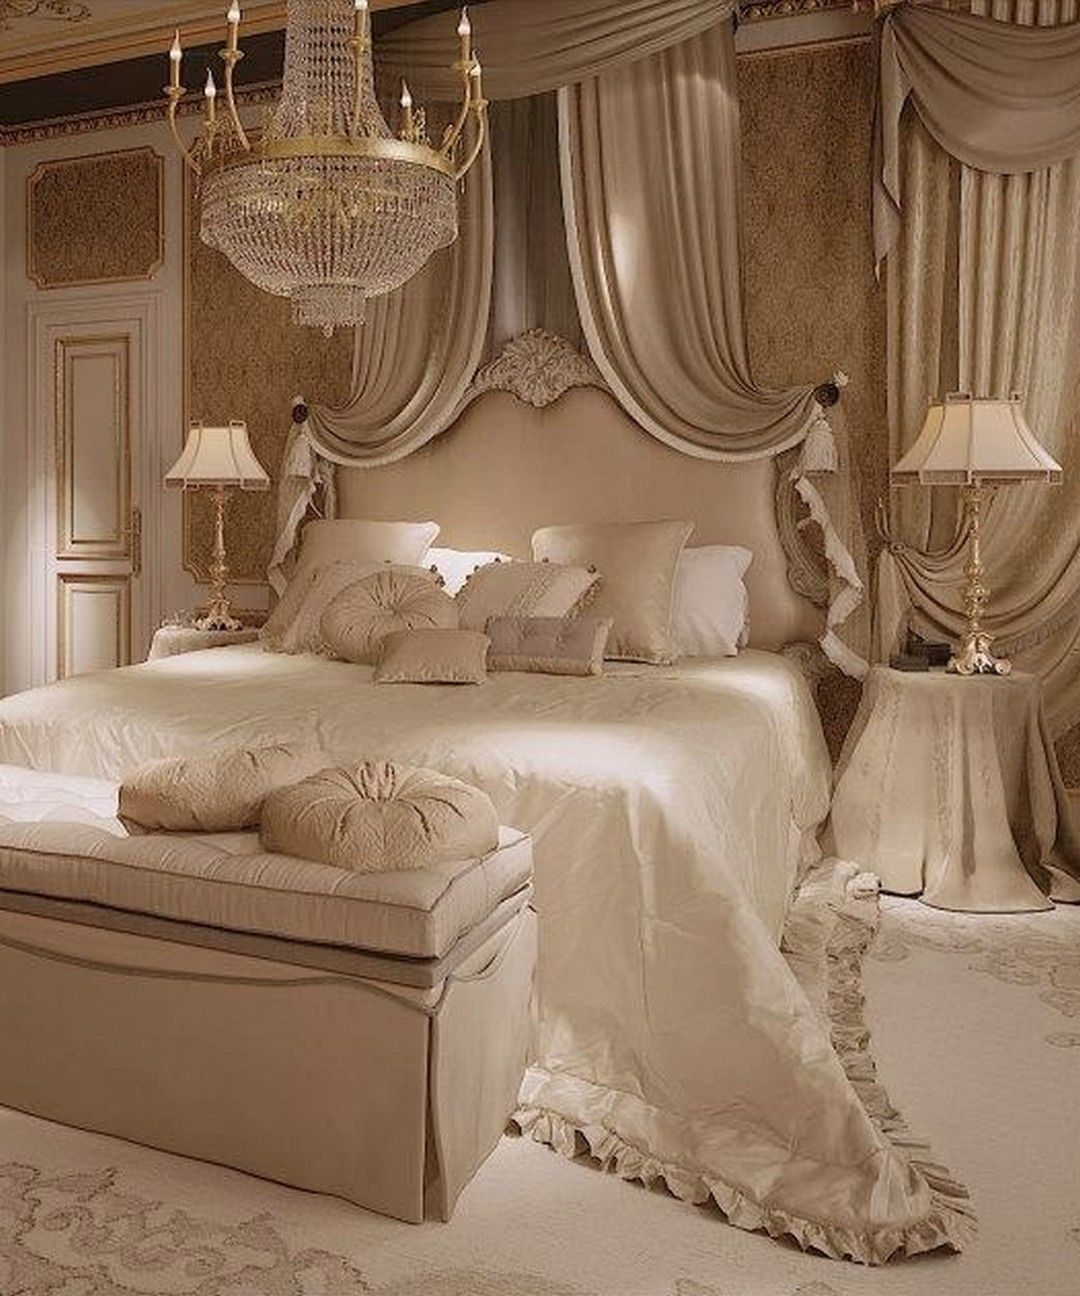 Best Ideas to Make Your Bedroom Extra Cozy and Romantic - House & Living